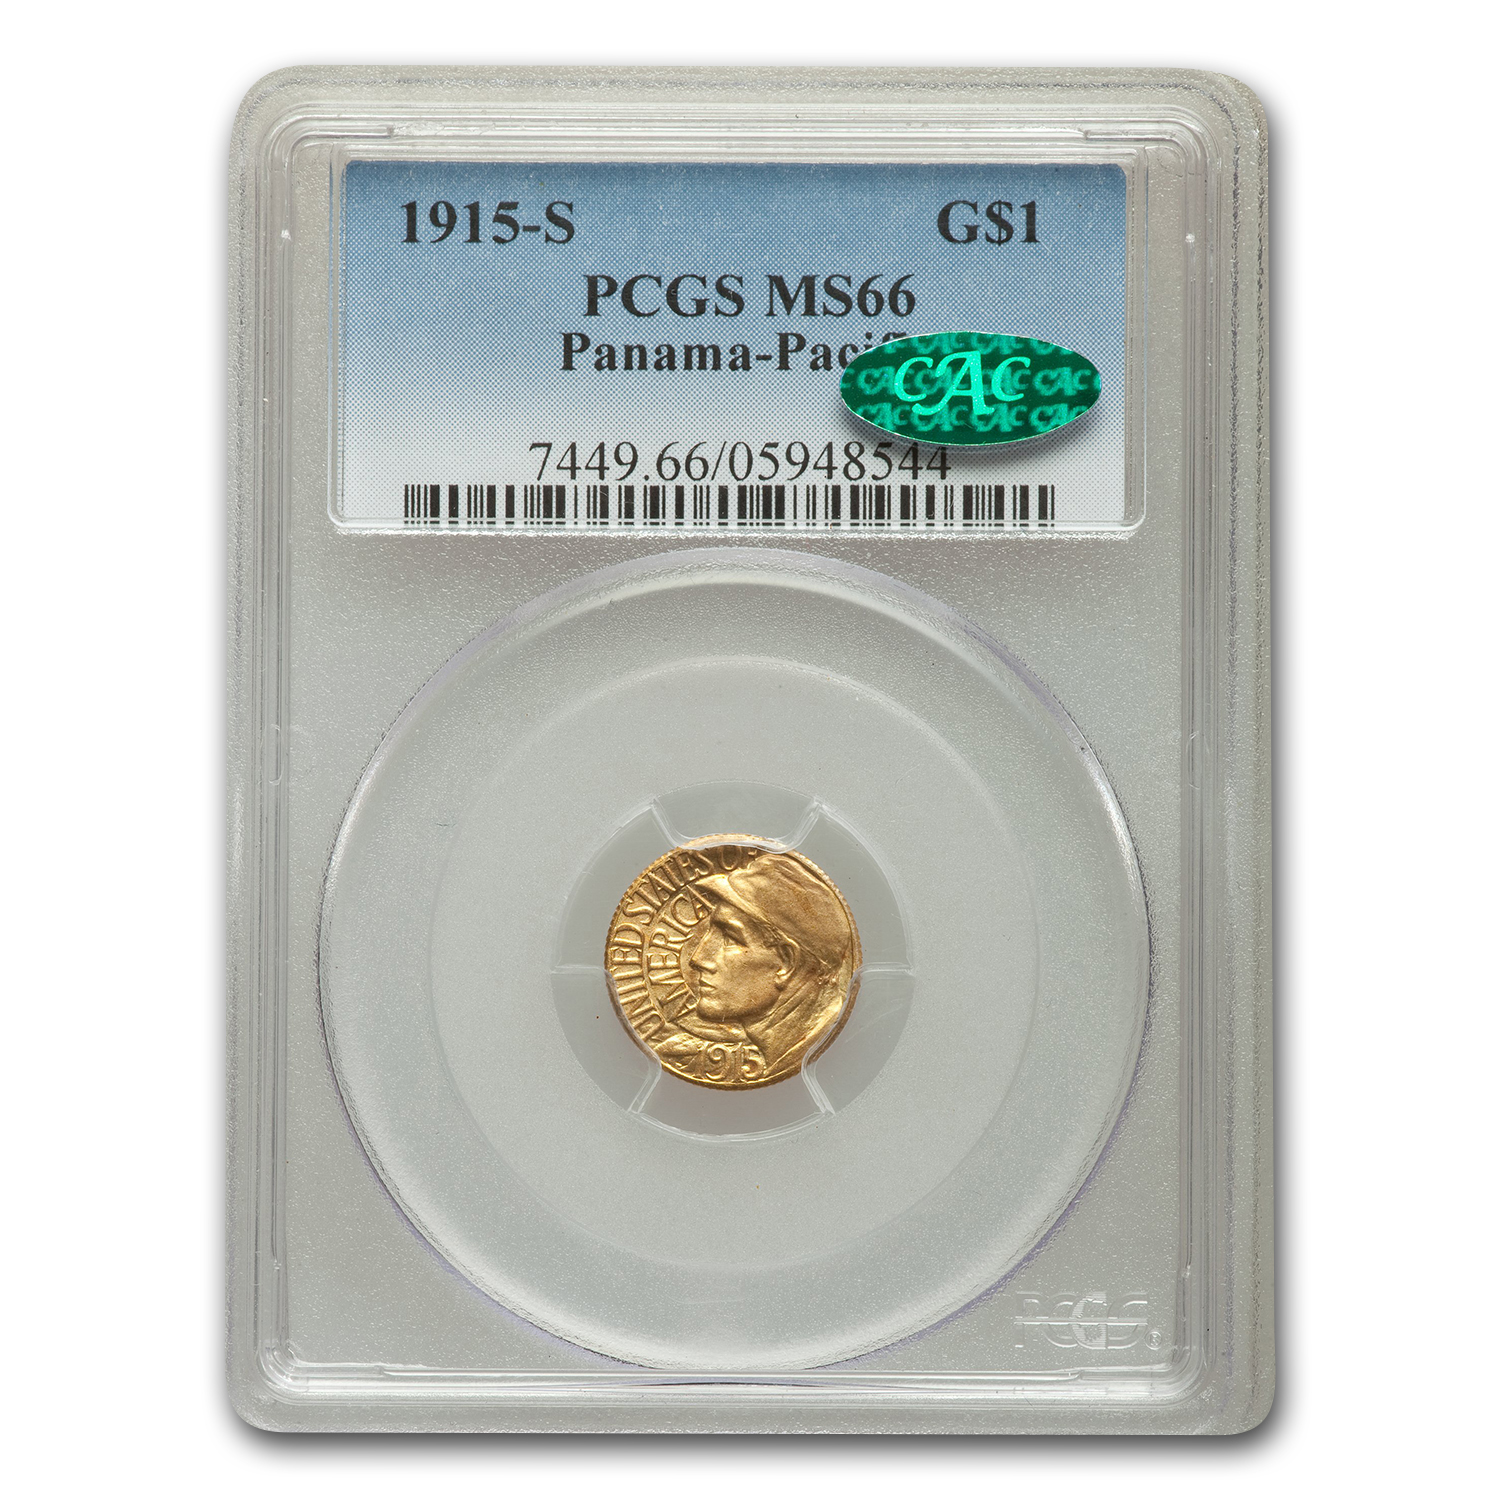 1915-S $1.00 Gold Panama-Pacific MS-66 PCGS - CAC